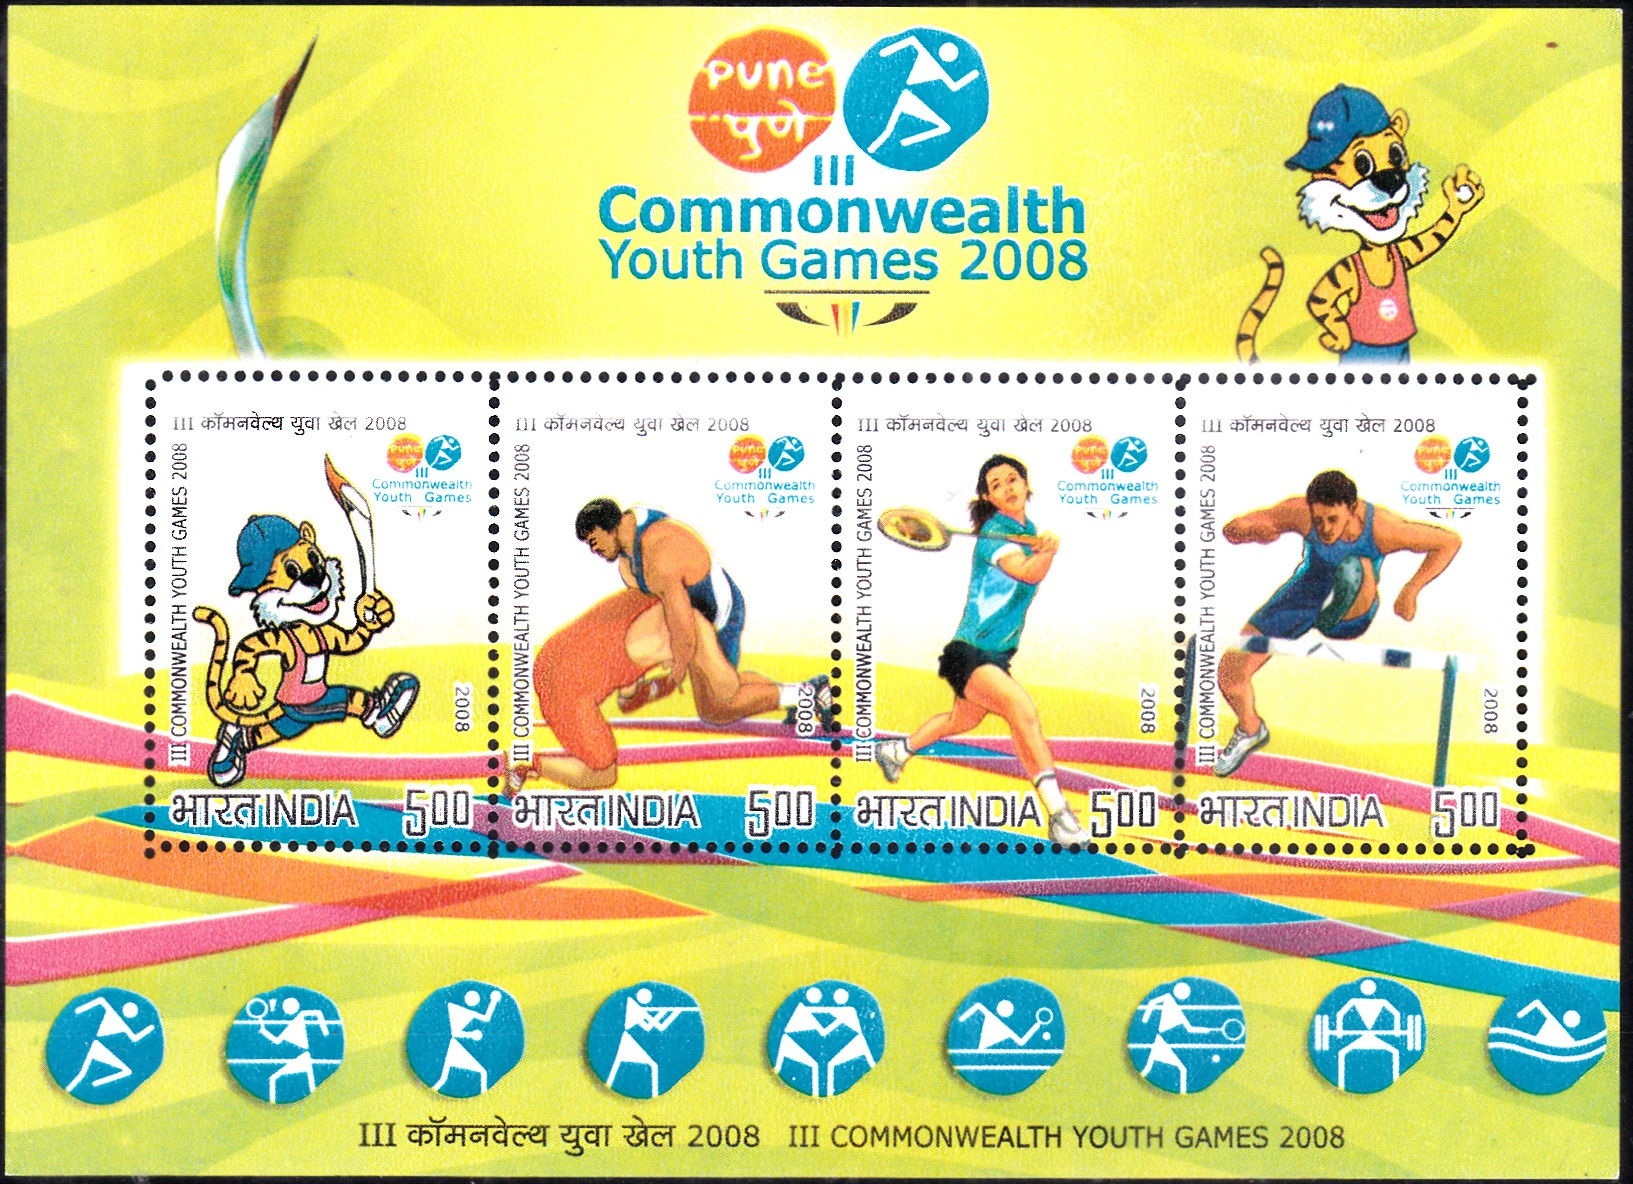 2008 Commonwealth Youth Games : First to be held in Asia